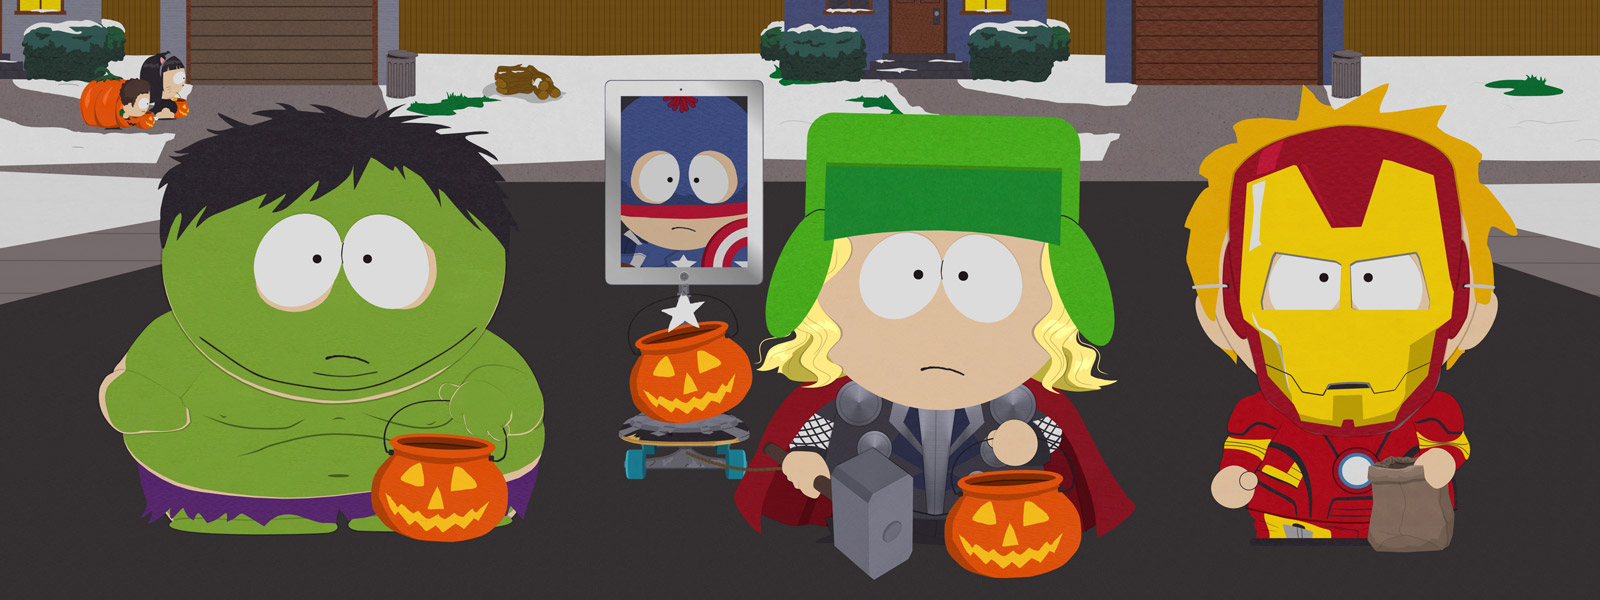 South Park hd cover picture, South Park hd cover wallpaper